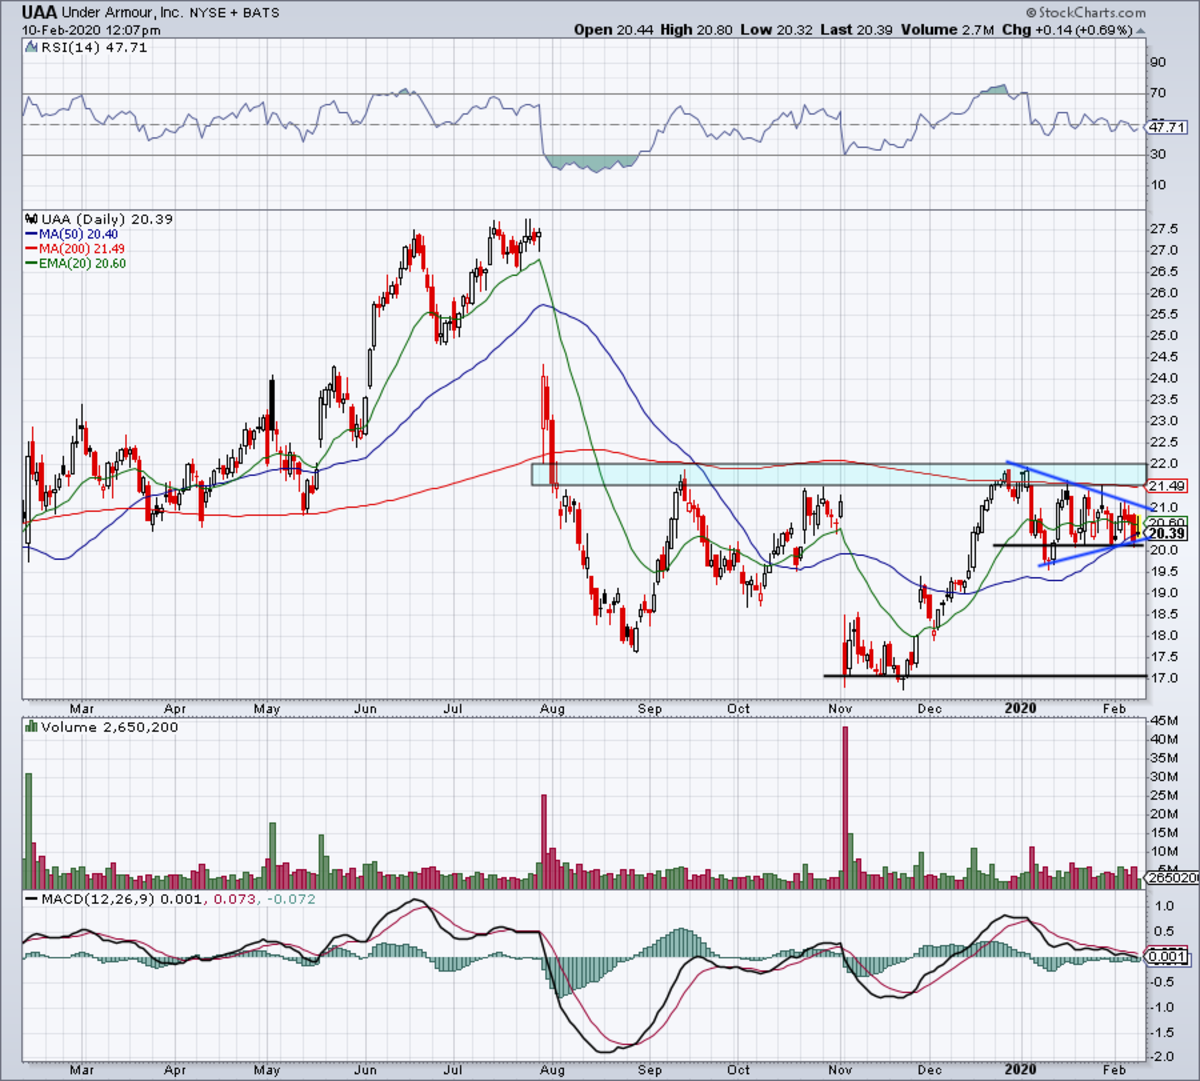 Daily chart of Under Armour stock